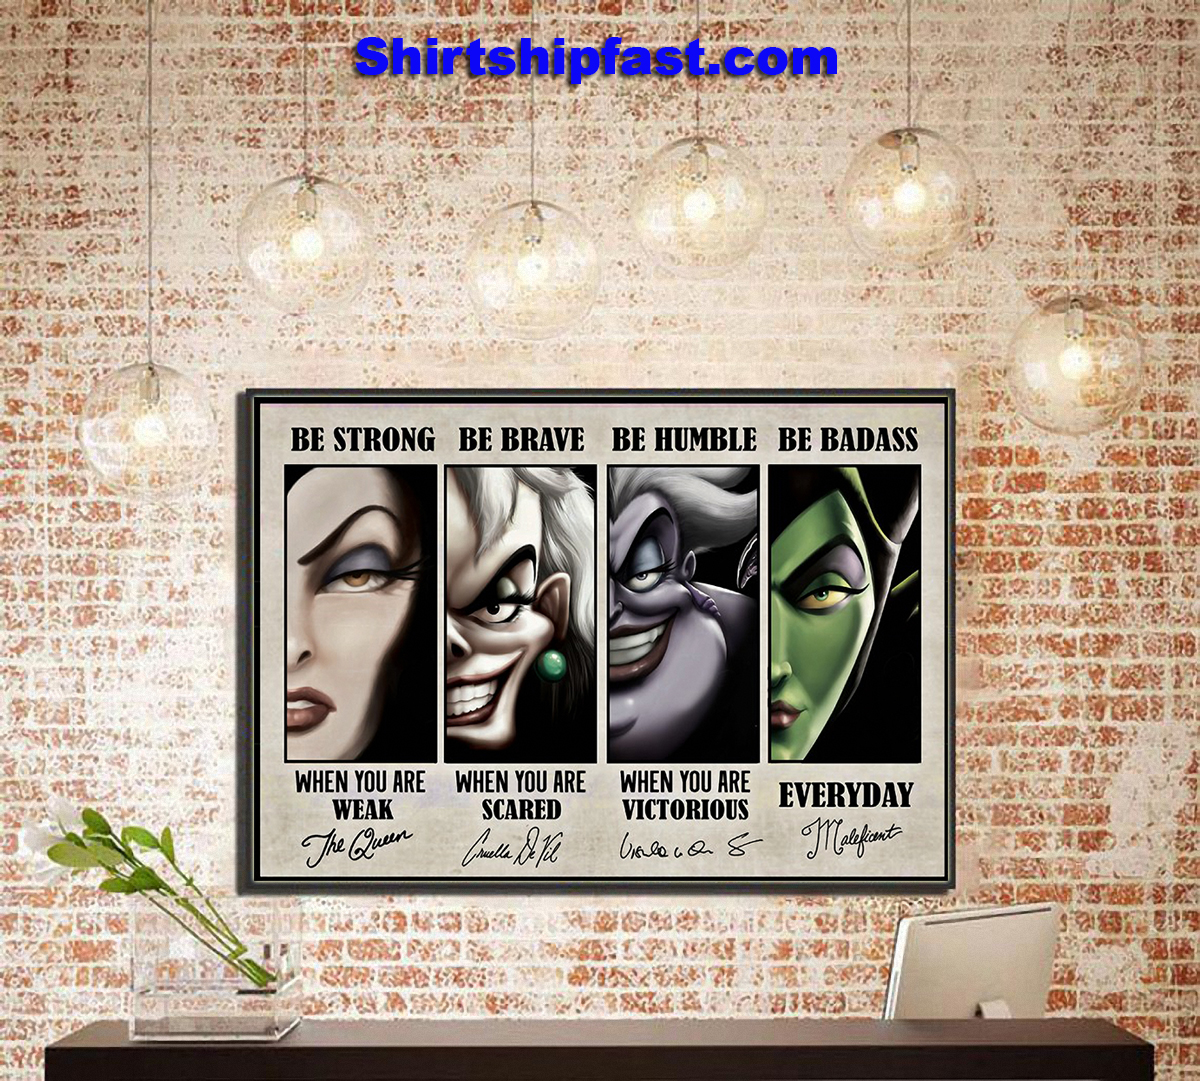 Disney villains signature be strong be brave be humble be badass poster - Picture 3